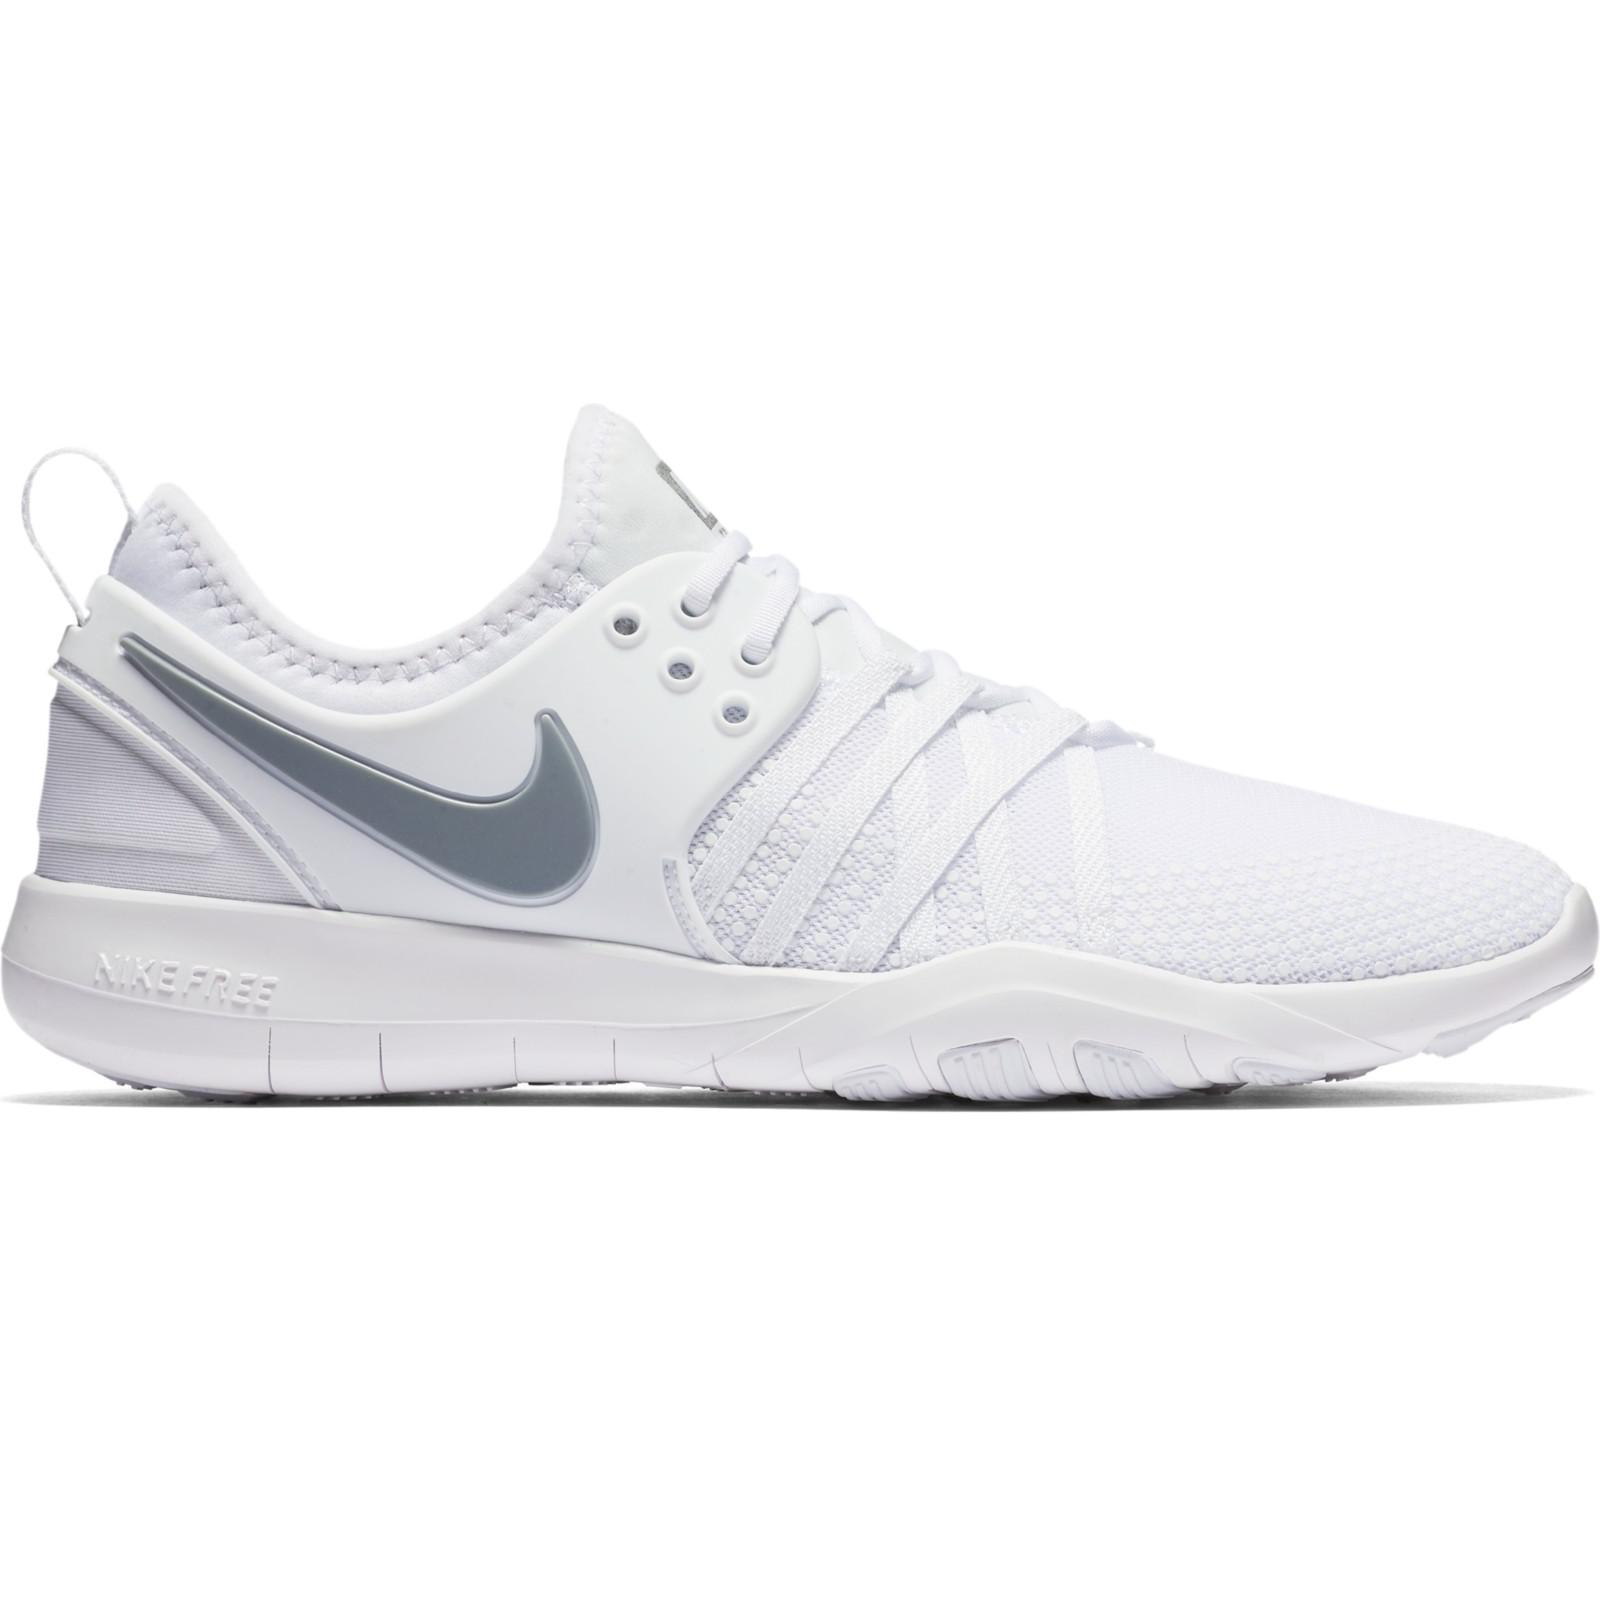 08dce3a9cdd30 Nike Free Tr 7 Women s Cross Trainers in White - Lyst